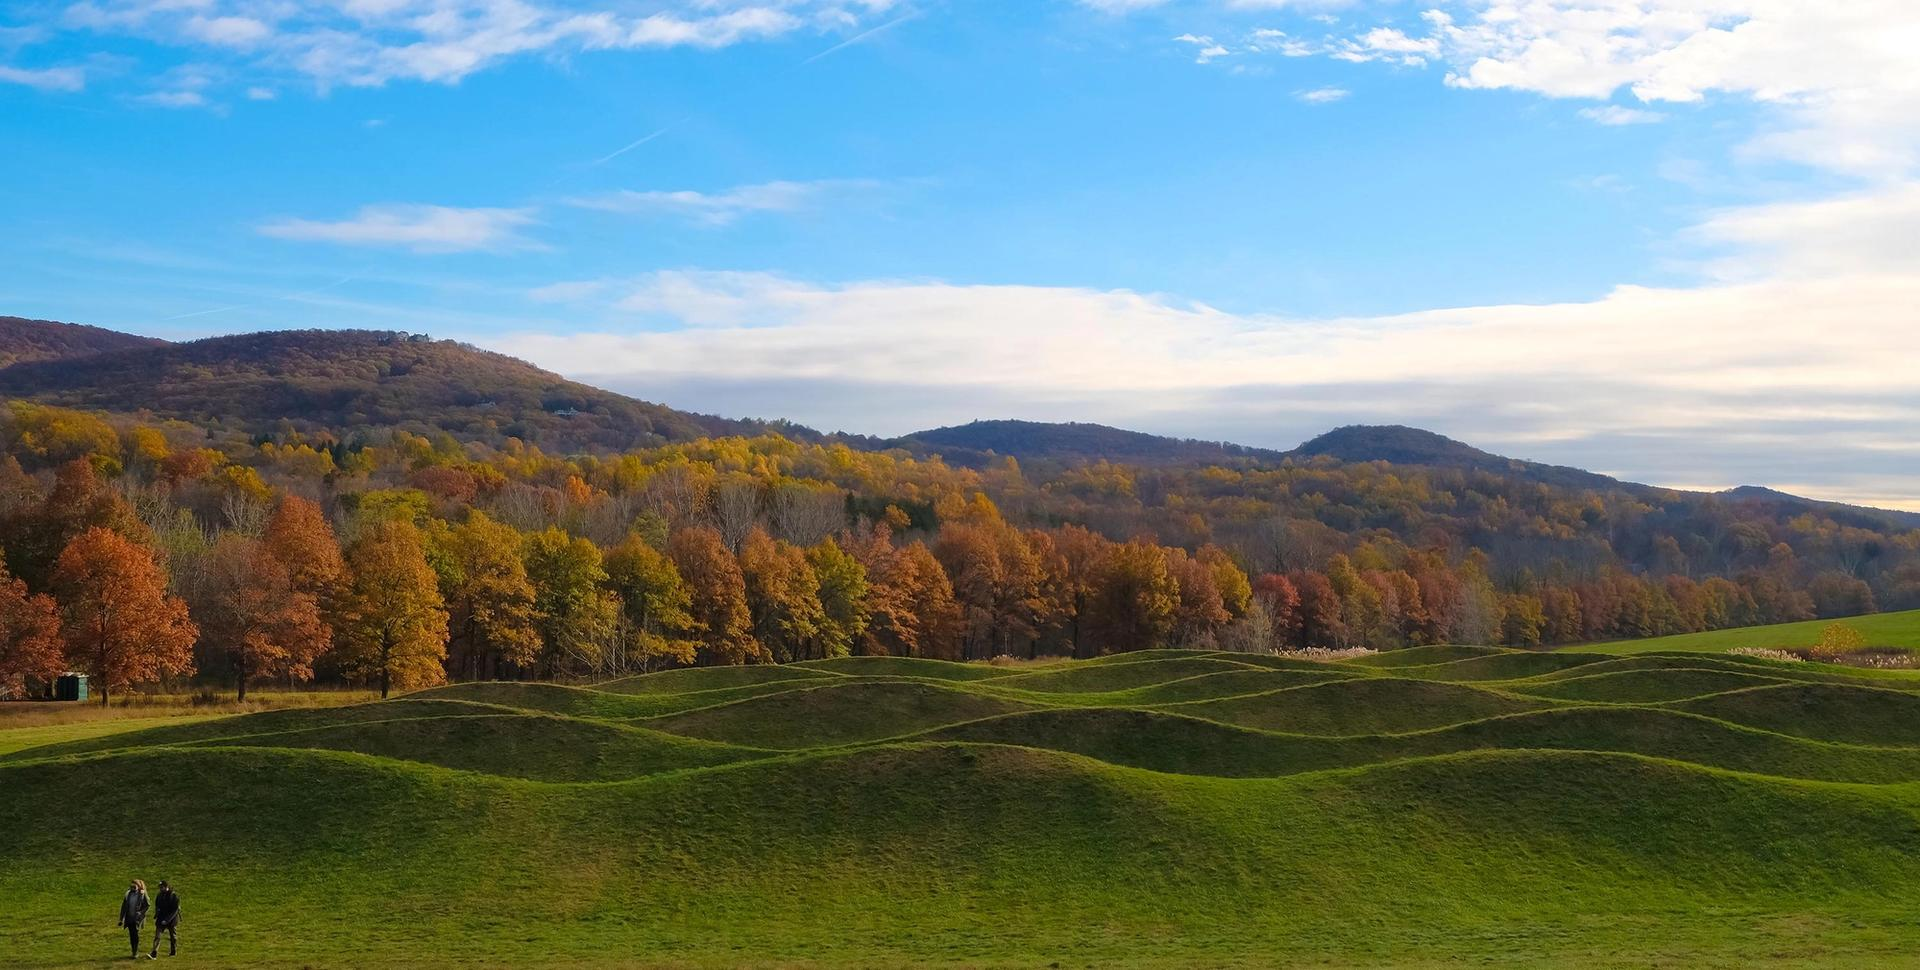 Maya Lin's Wave Hill at Storm King Art Center, where there is a collection of more than 100 carefully sited sculptures and earthworks. Shutterstock